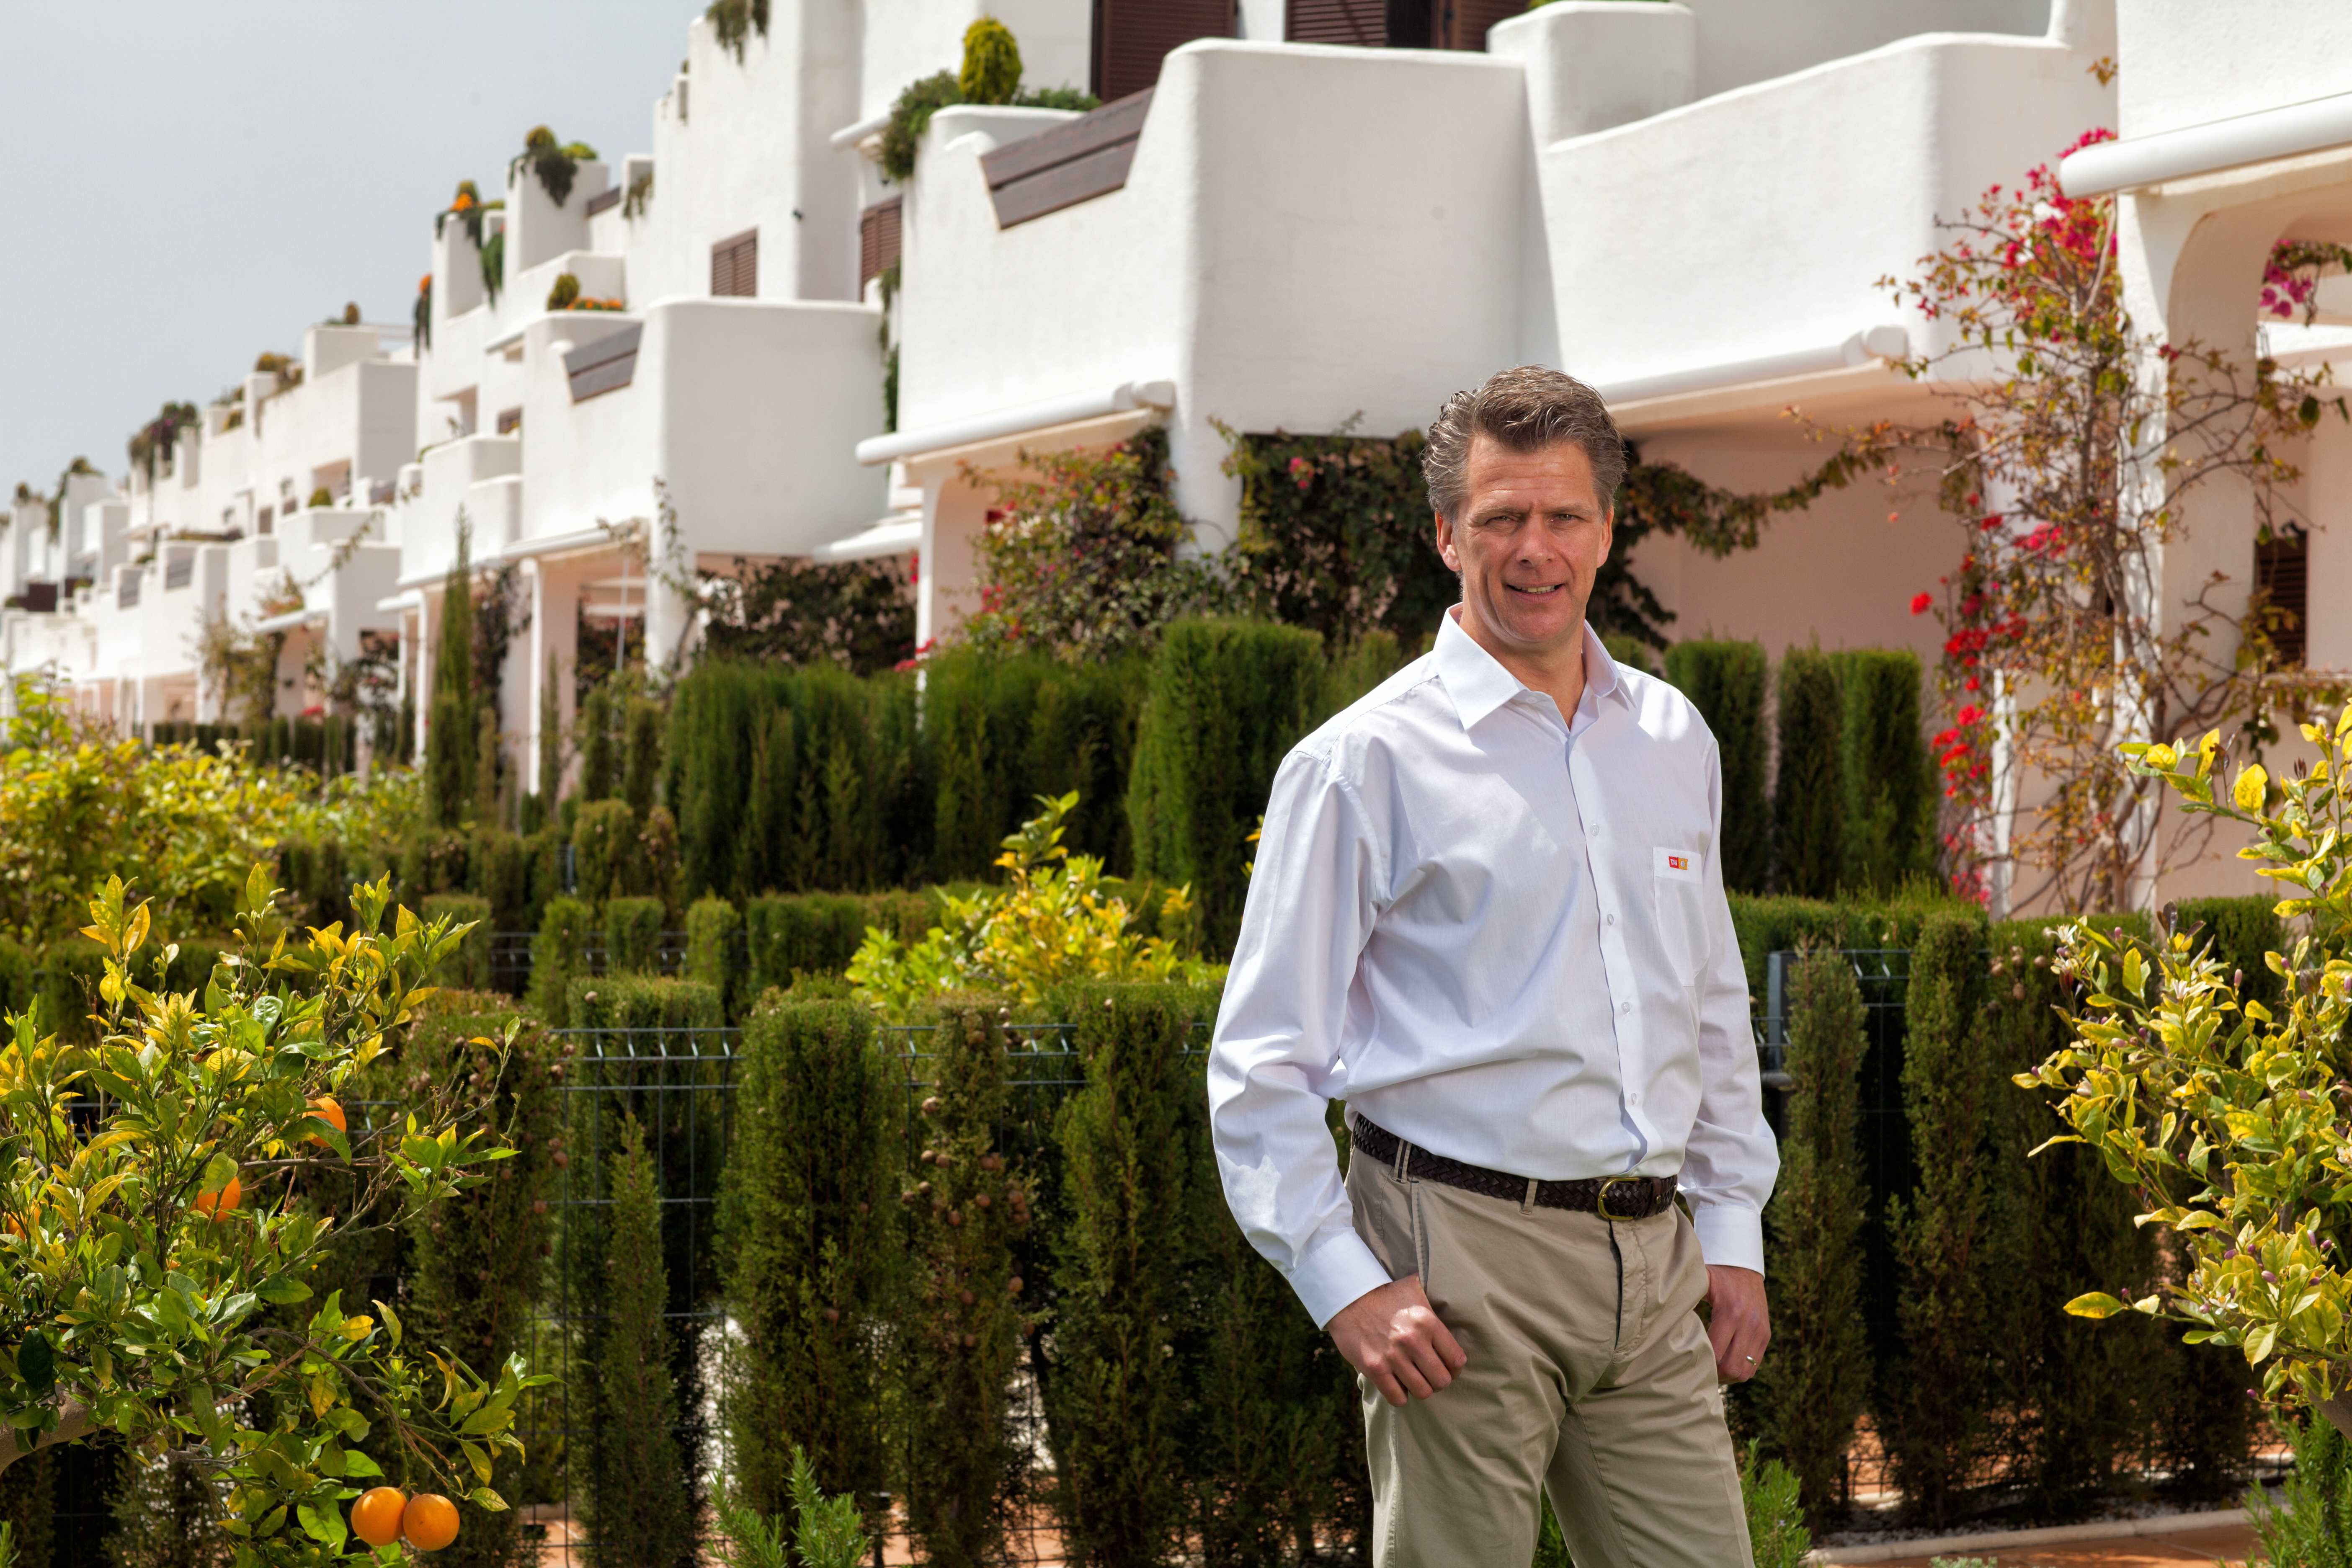 Spain is still a winner for second homes says Andrew Castle